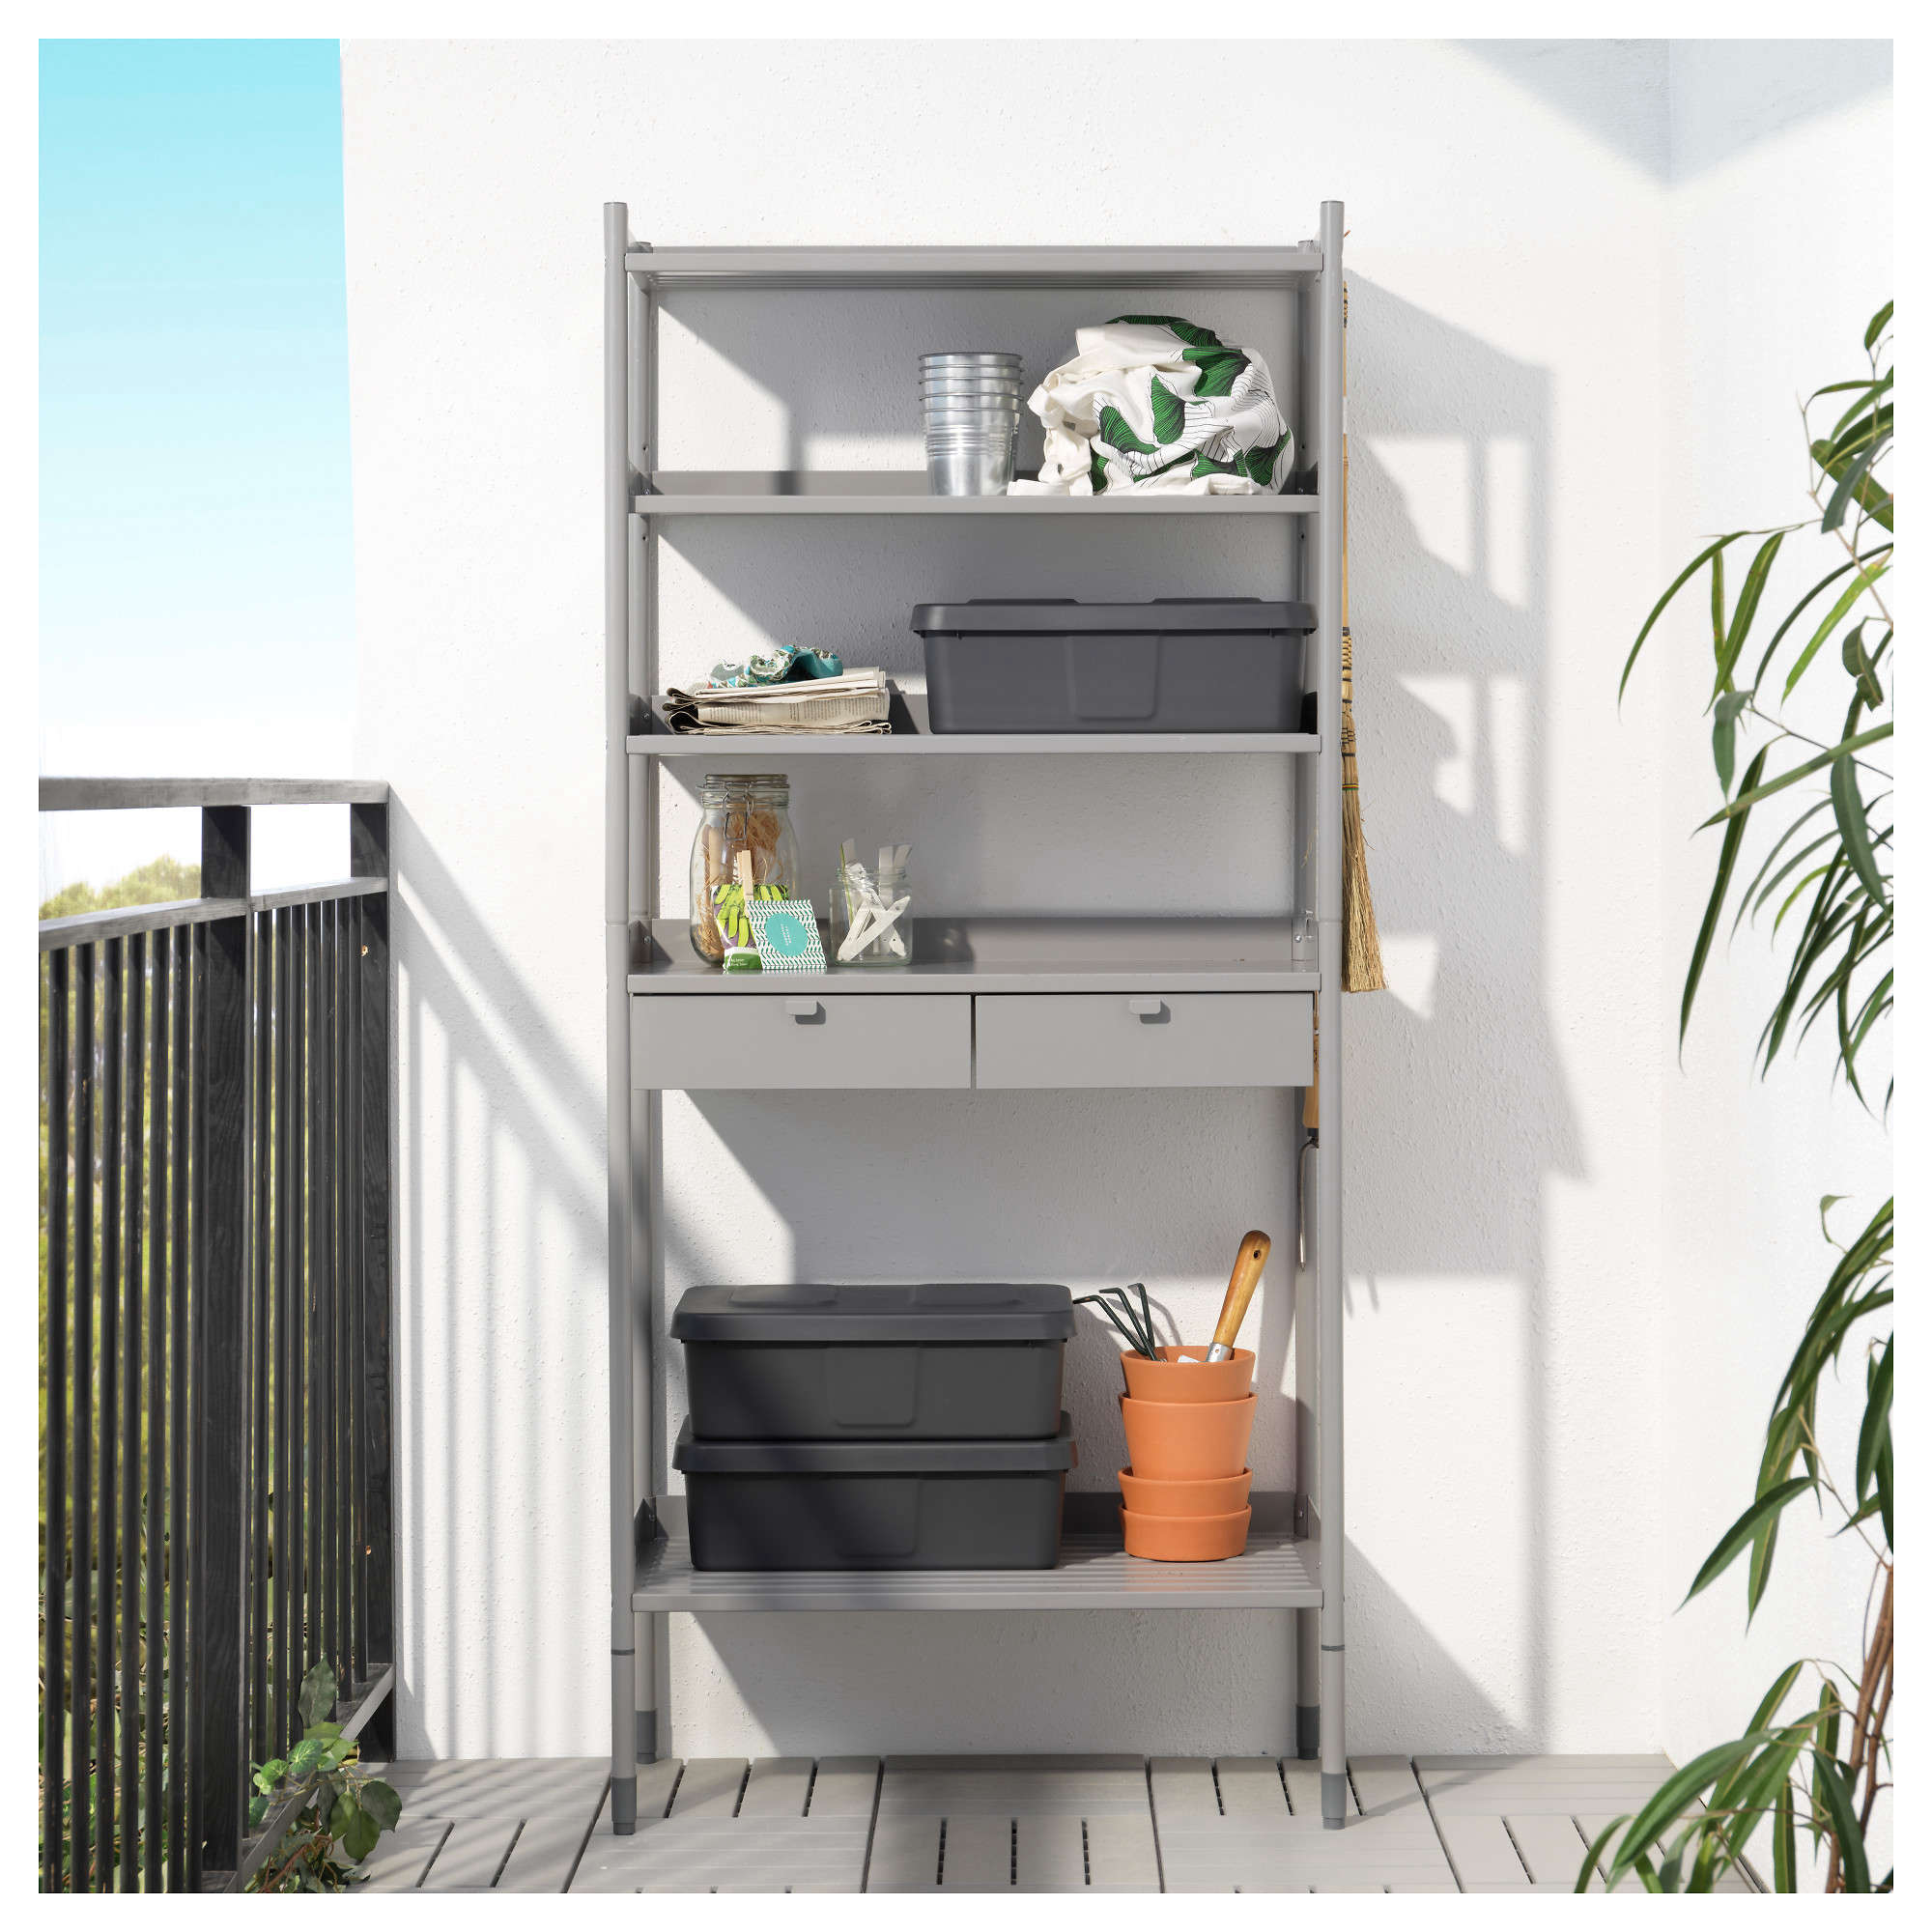 storage in sheds unique of shelving ideas gallery shed ikea cm unit lovely hyllis outdoor